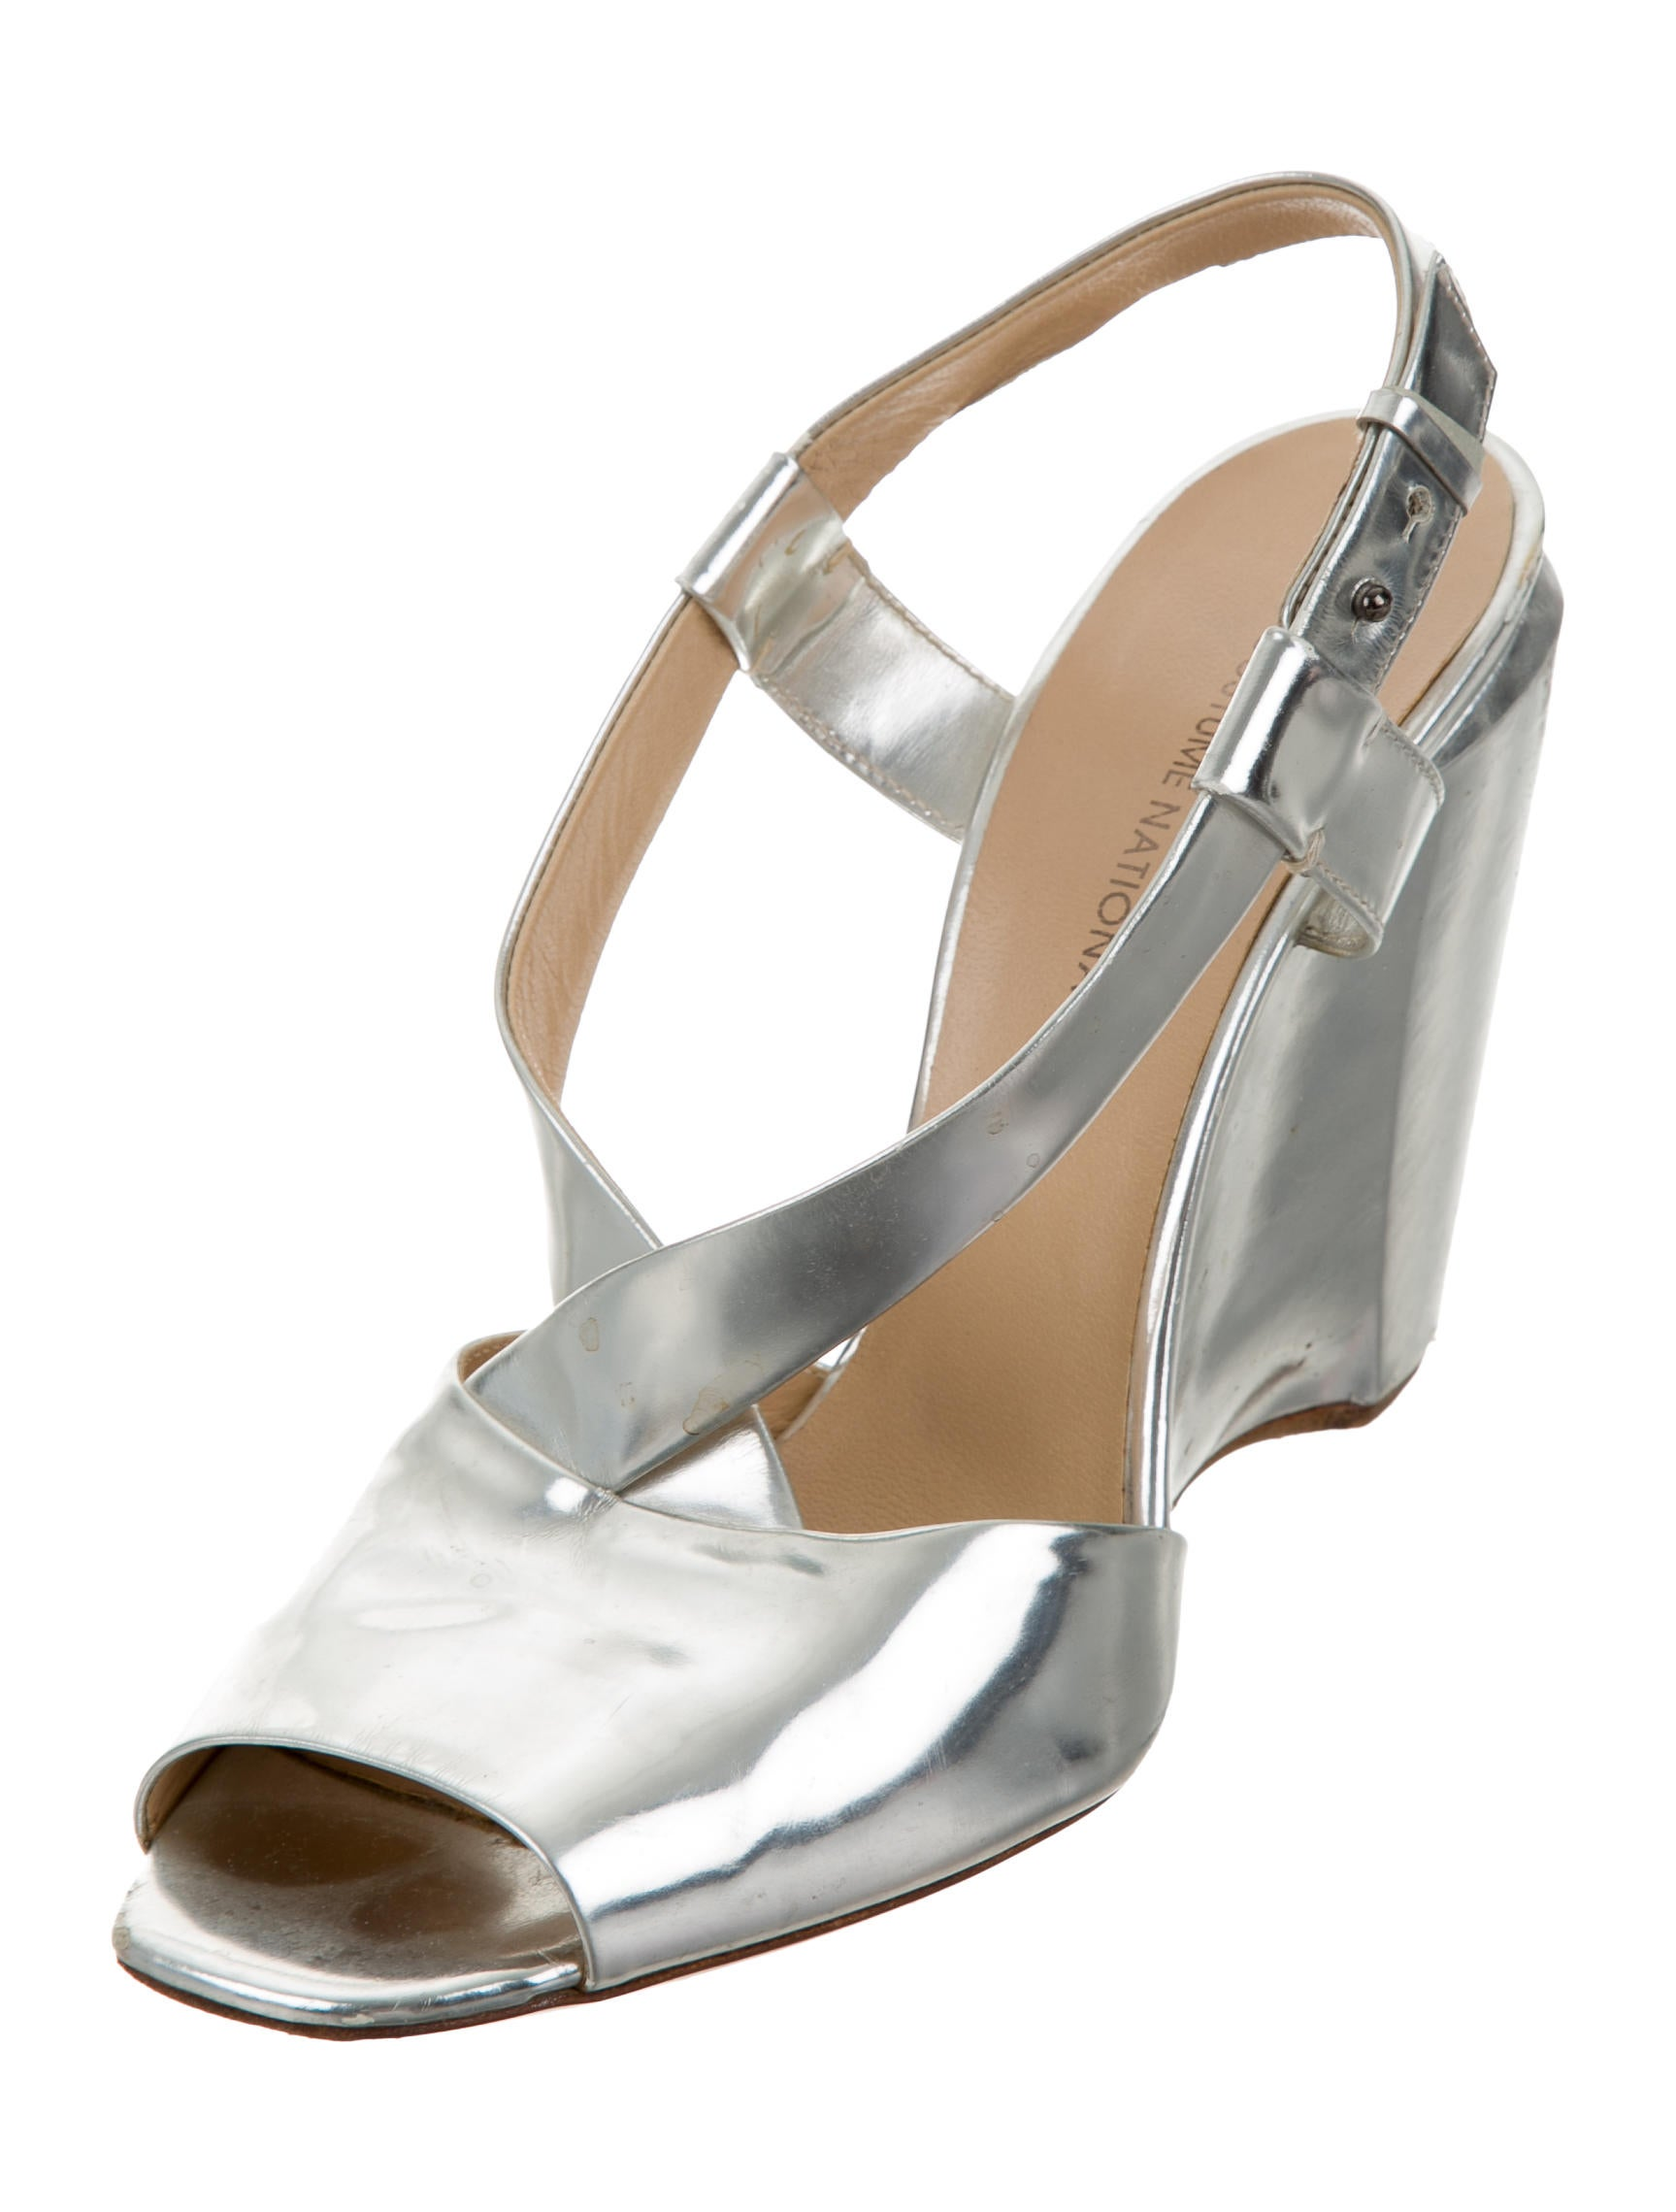 costume national metallic wedge sandals shoes cot23450